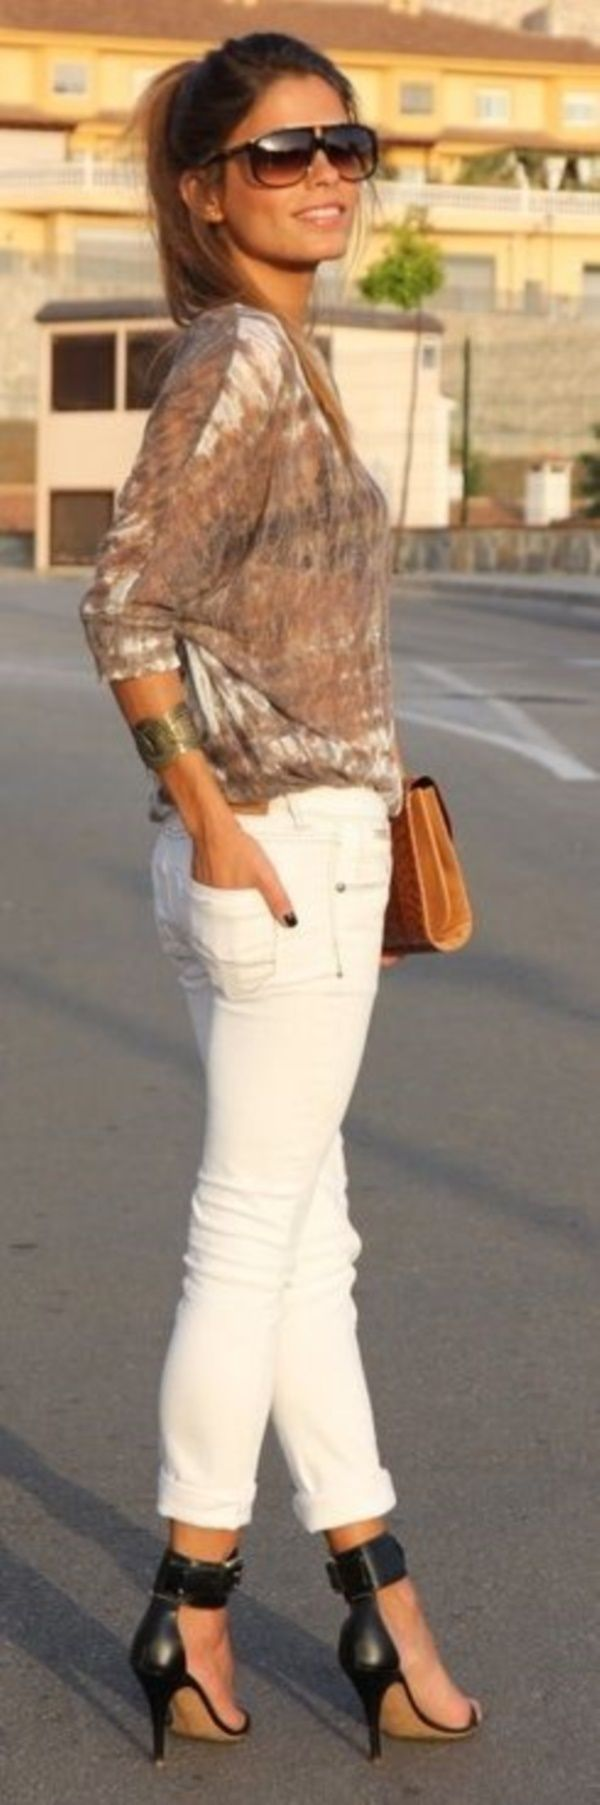 Ways to Stay Cool with Cuffed Jean Outfits0031